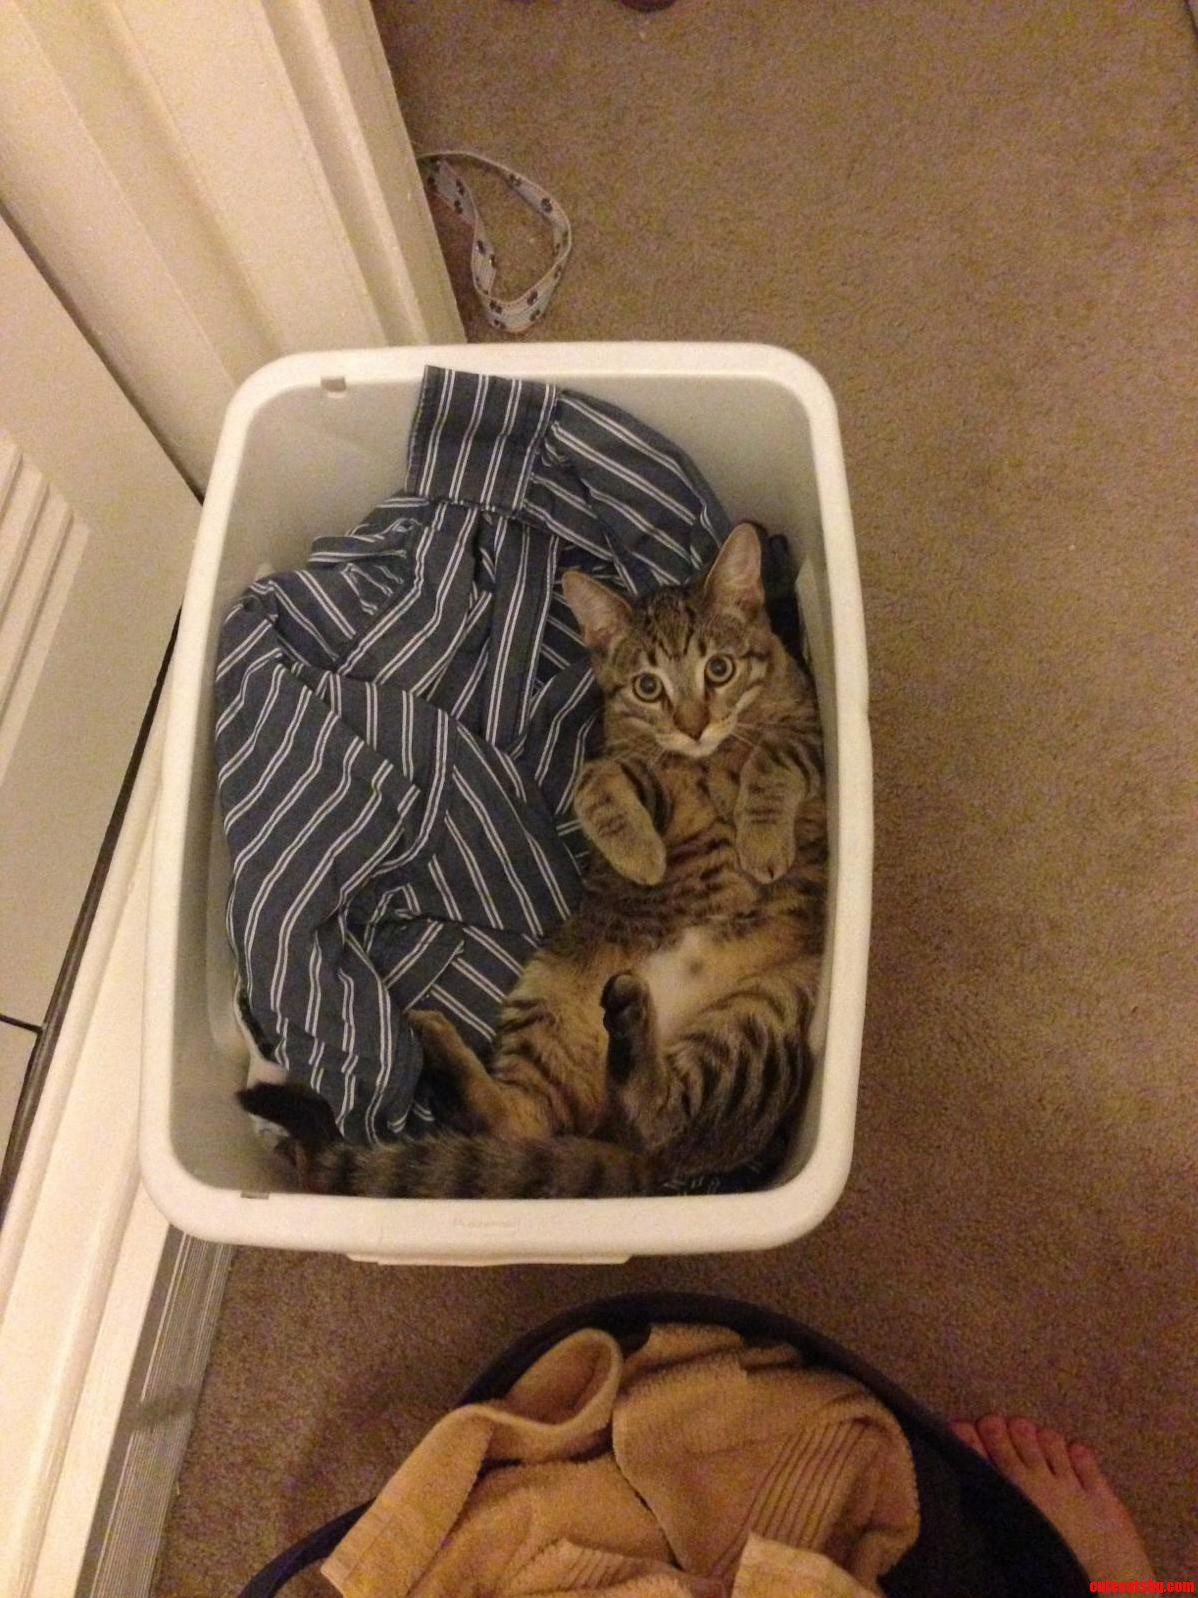 It Always Has To Be Clean Clothes…